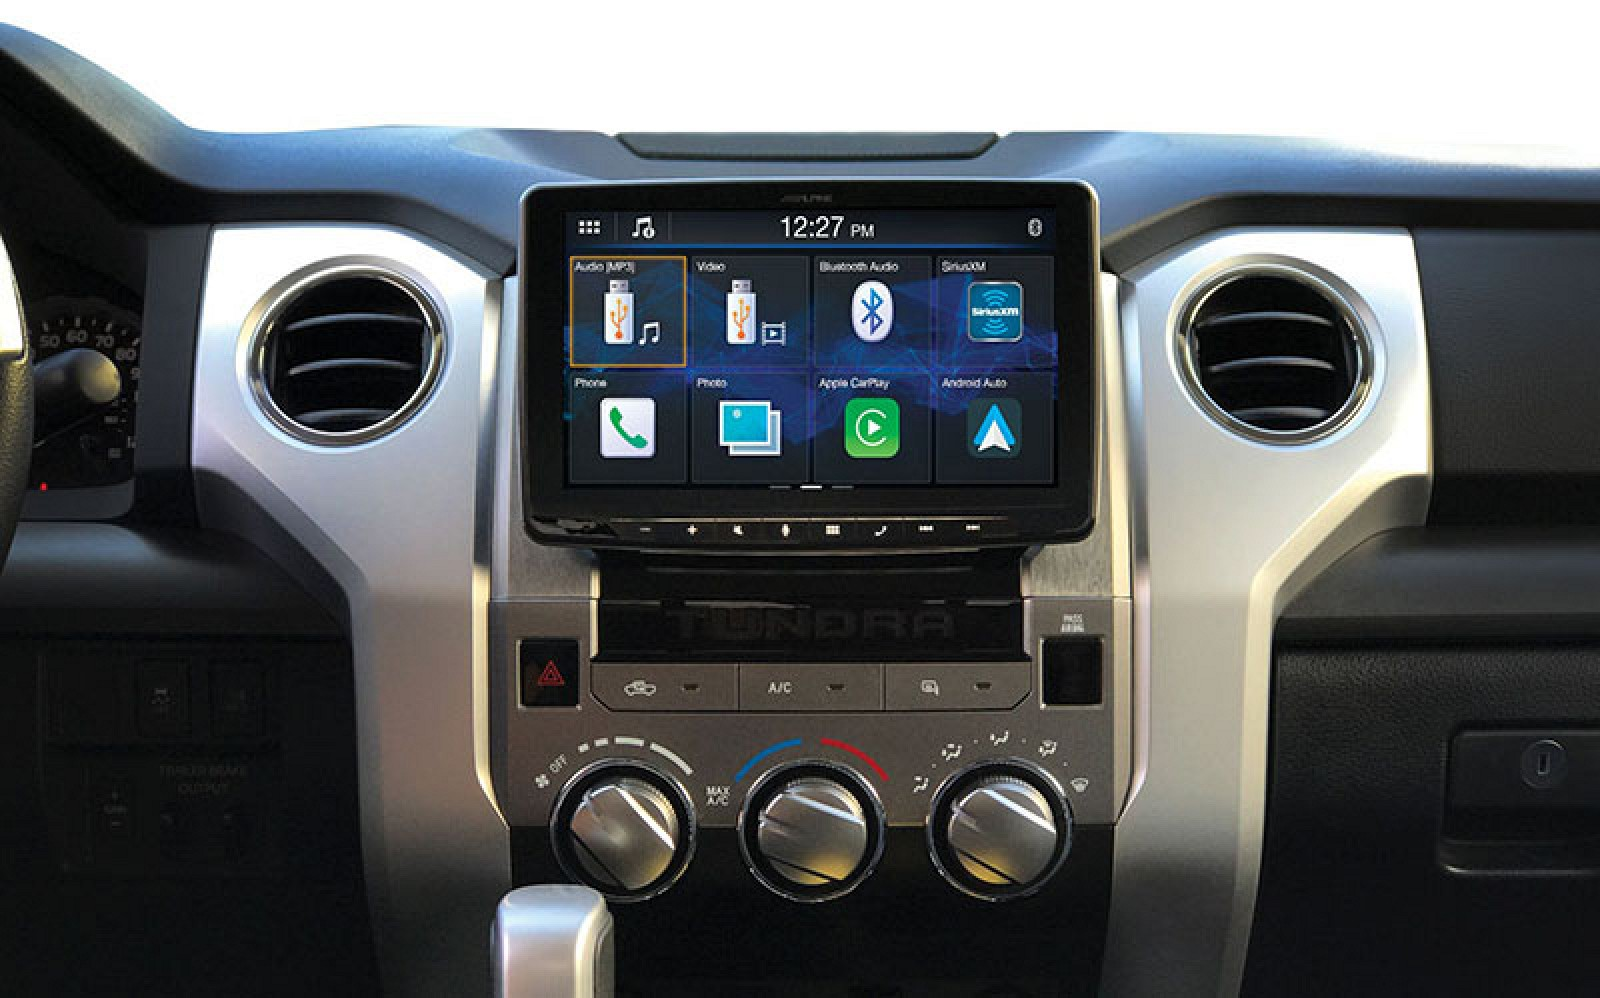 Best Carplay Head Unit 2019 CES 2019: Alpine Previews New CarPlay Receivers, One Features